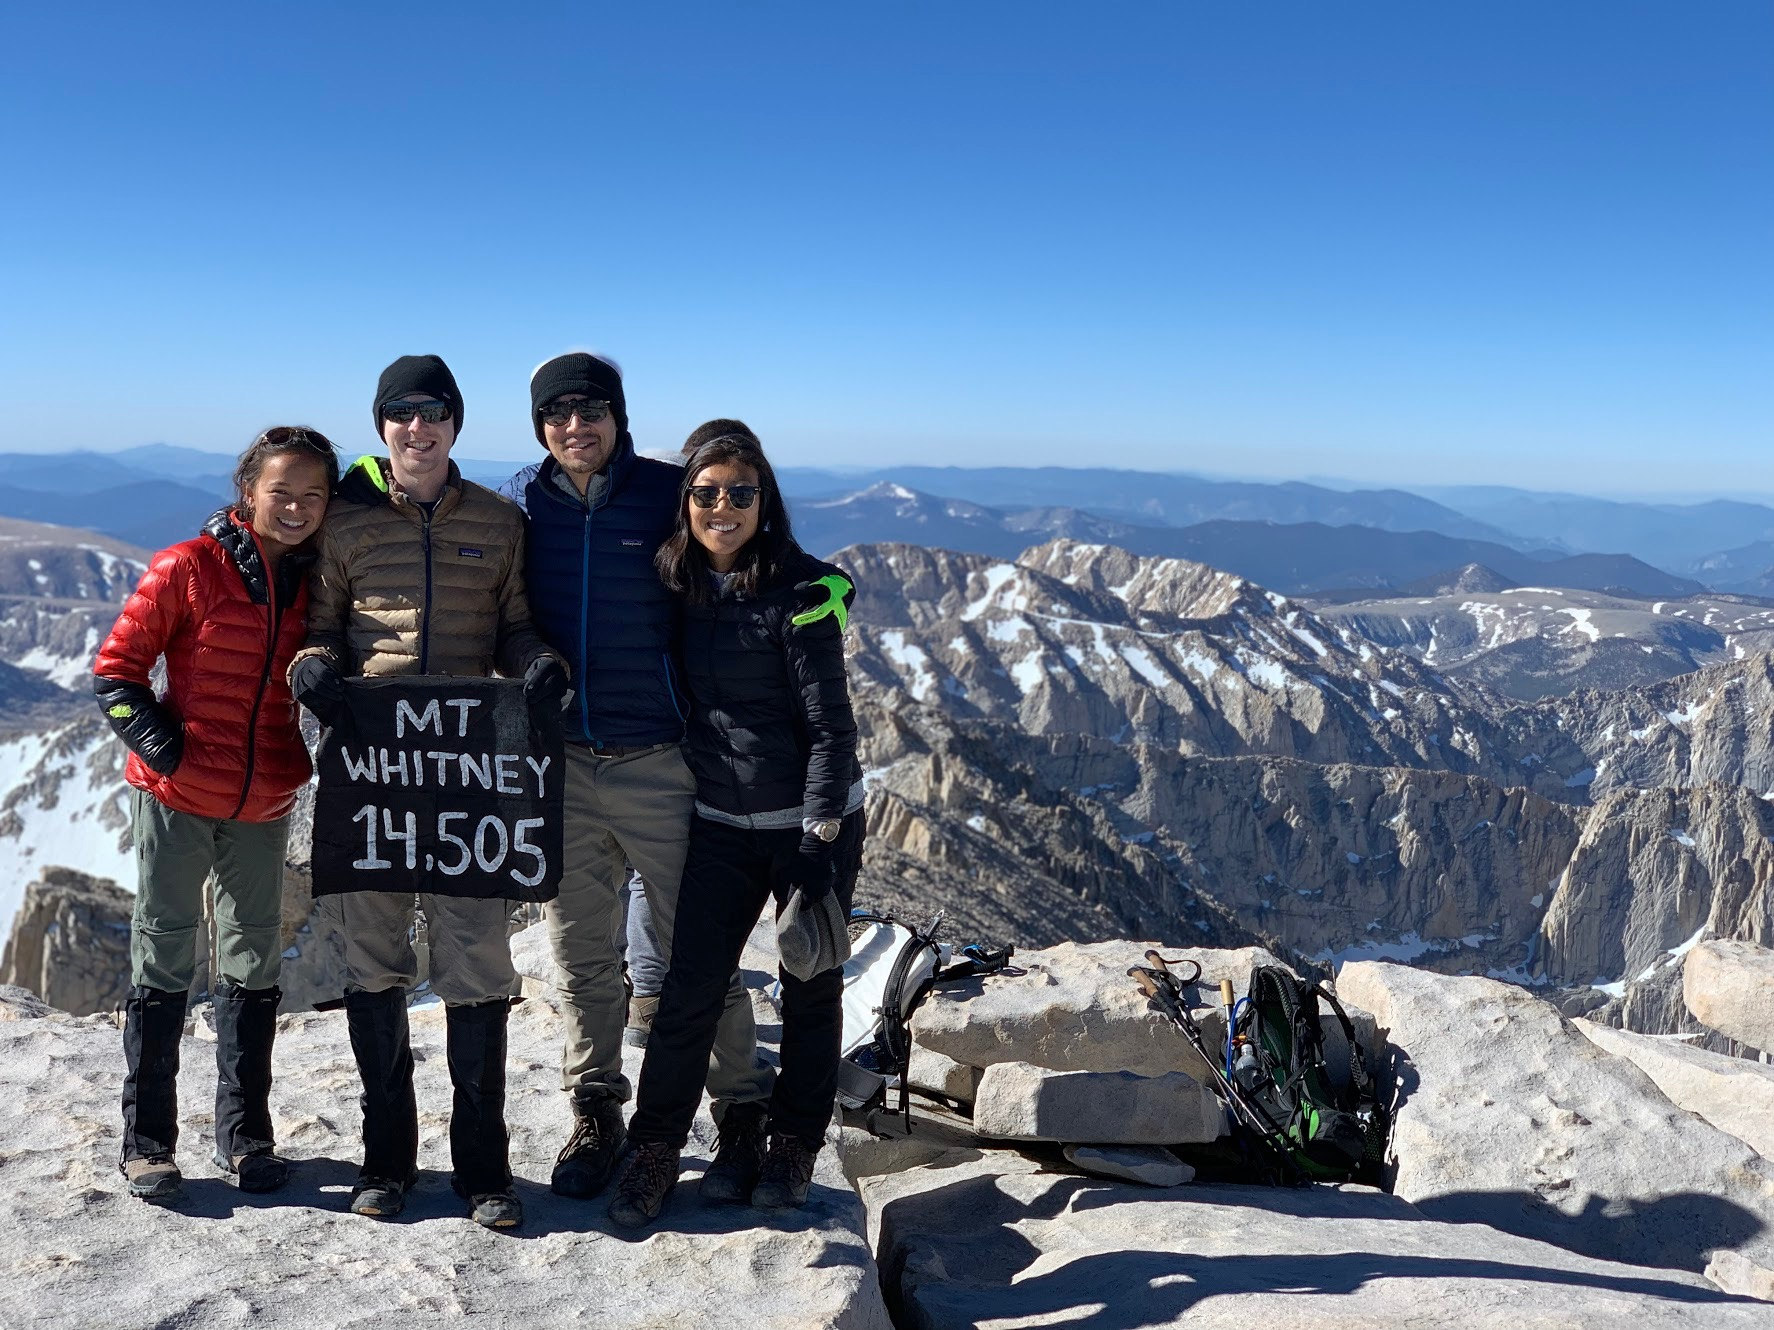 Summit photo left to right: Sophi, Nathan, Ray, Emily